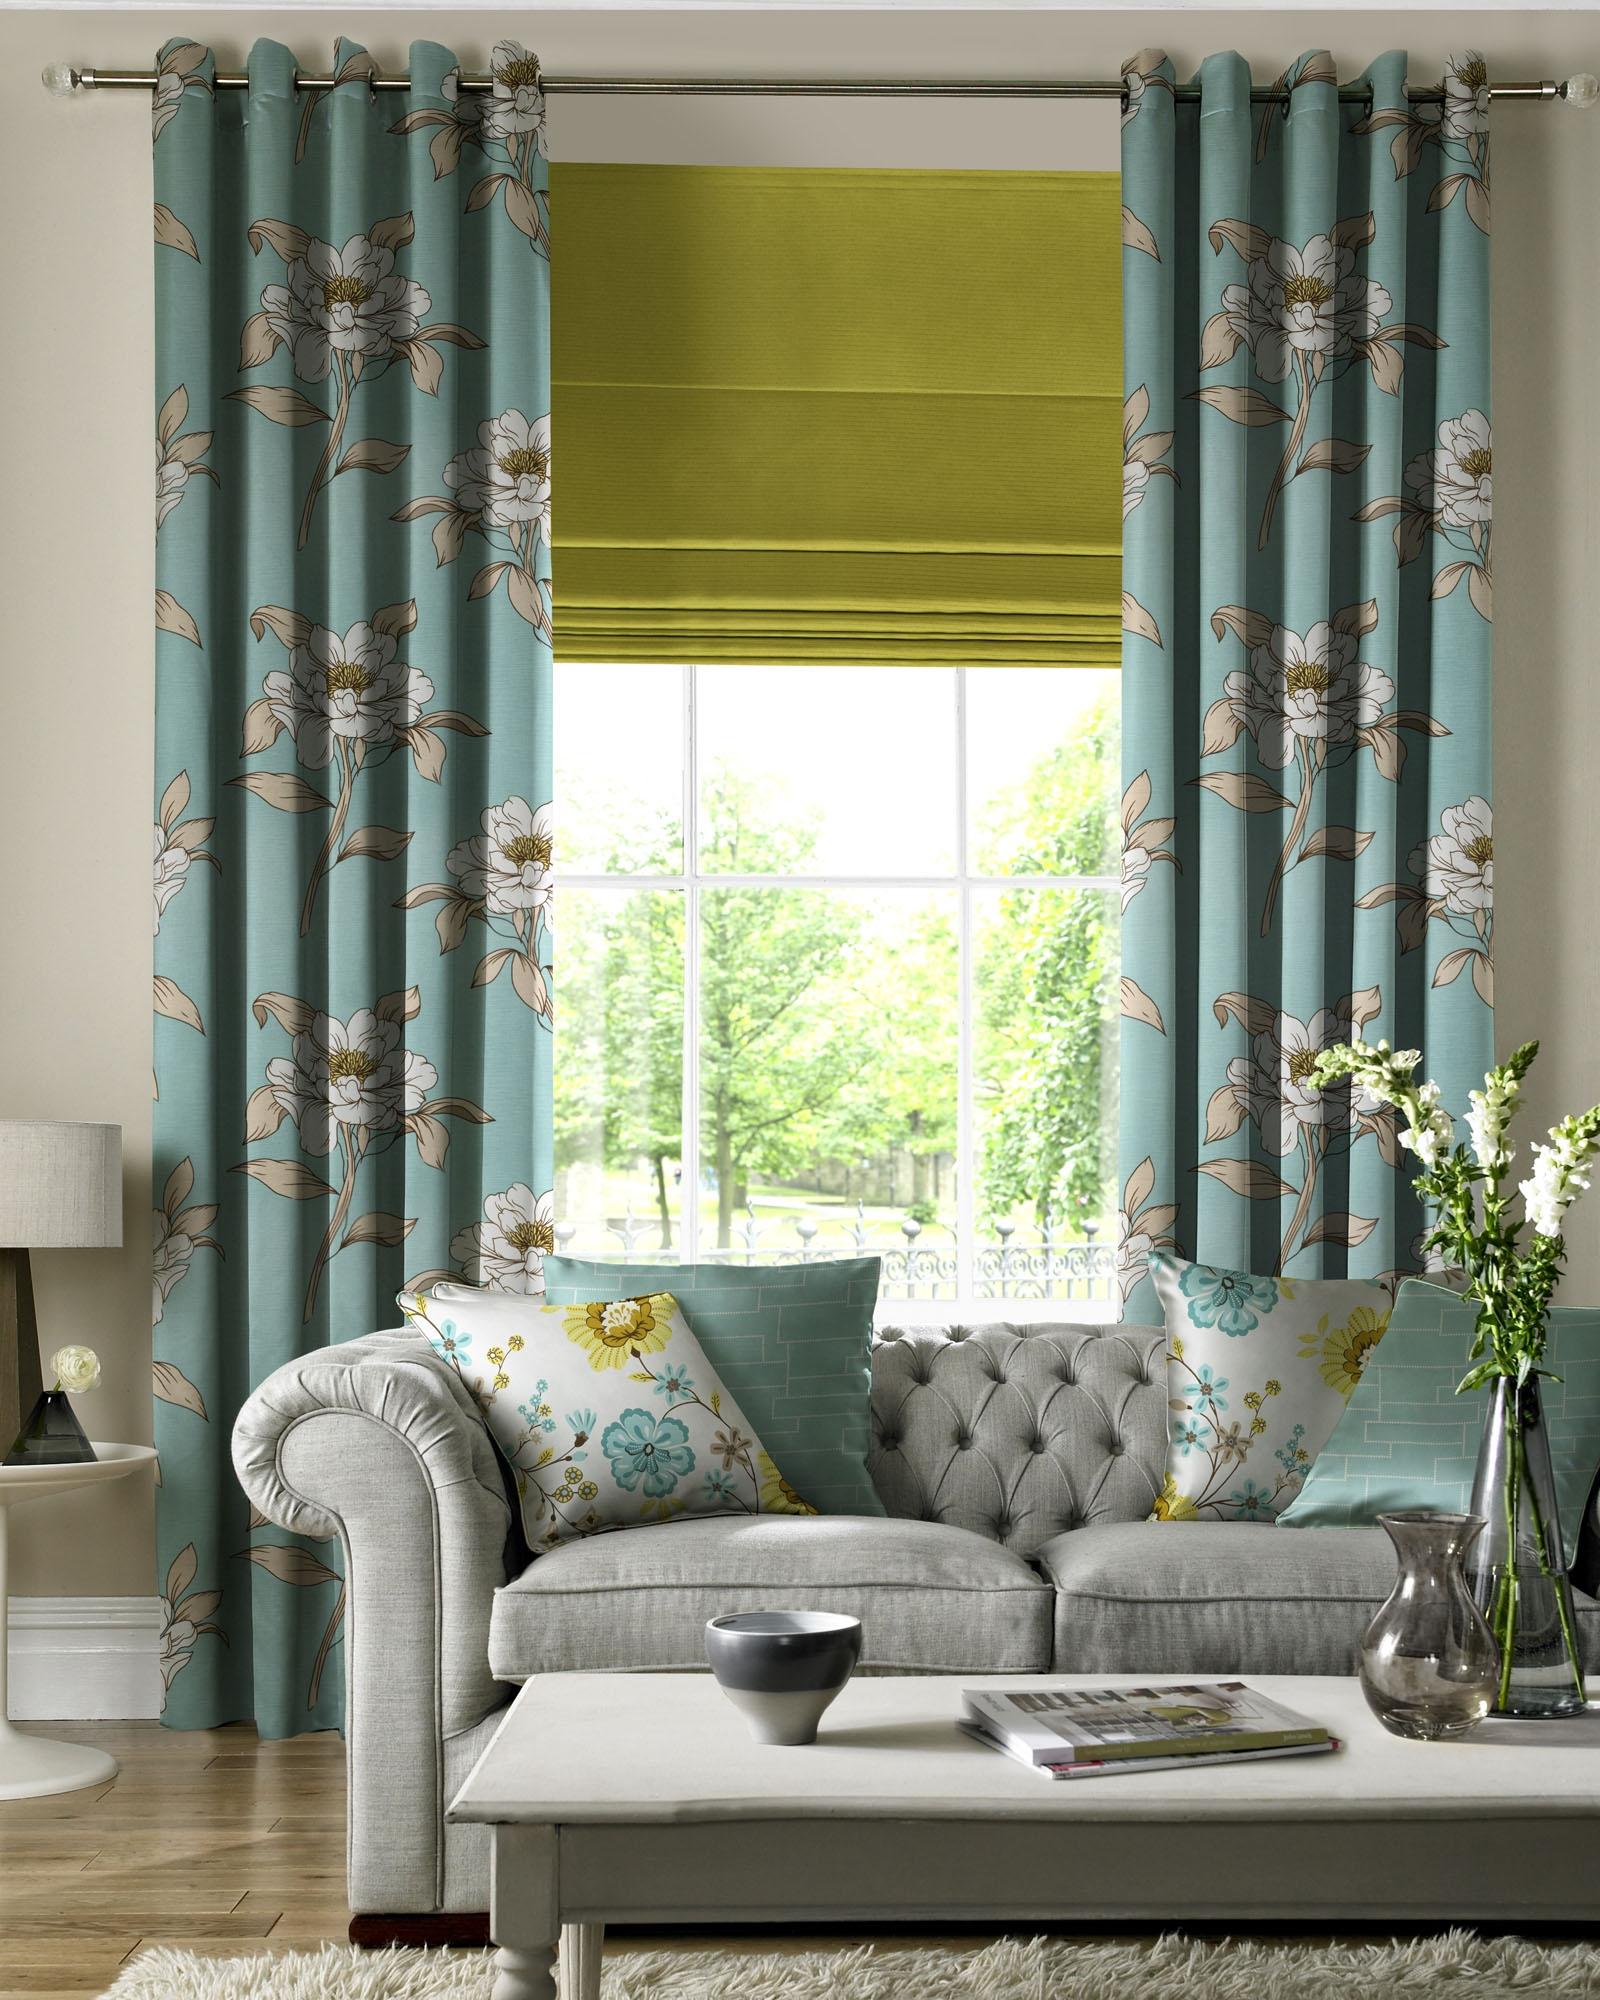 Blog In Roman Blinds With Blackout Lining (View 9 of 15)